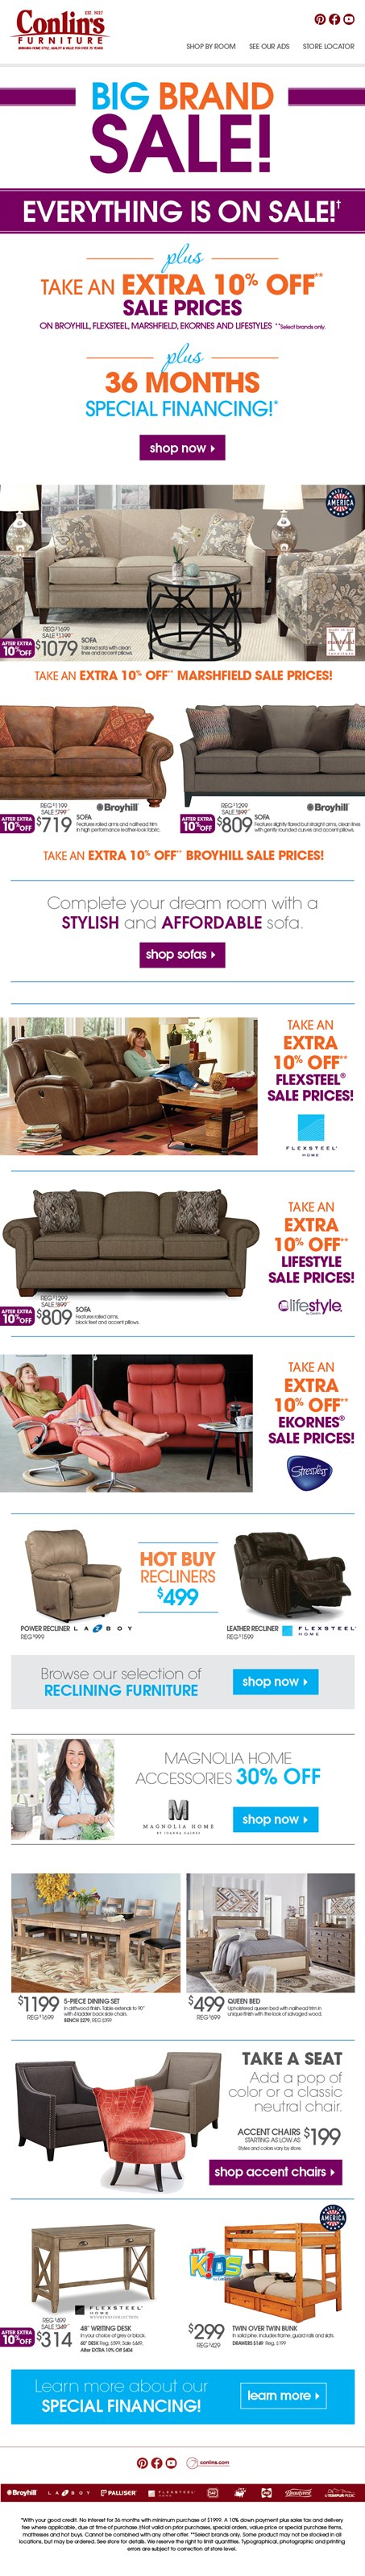 Furniture stores great falls mt - Print Promotions